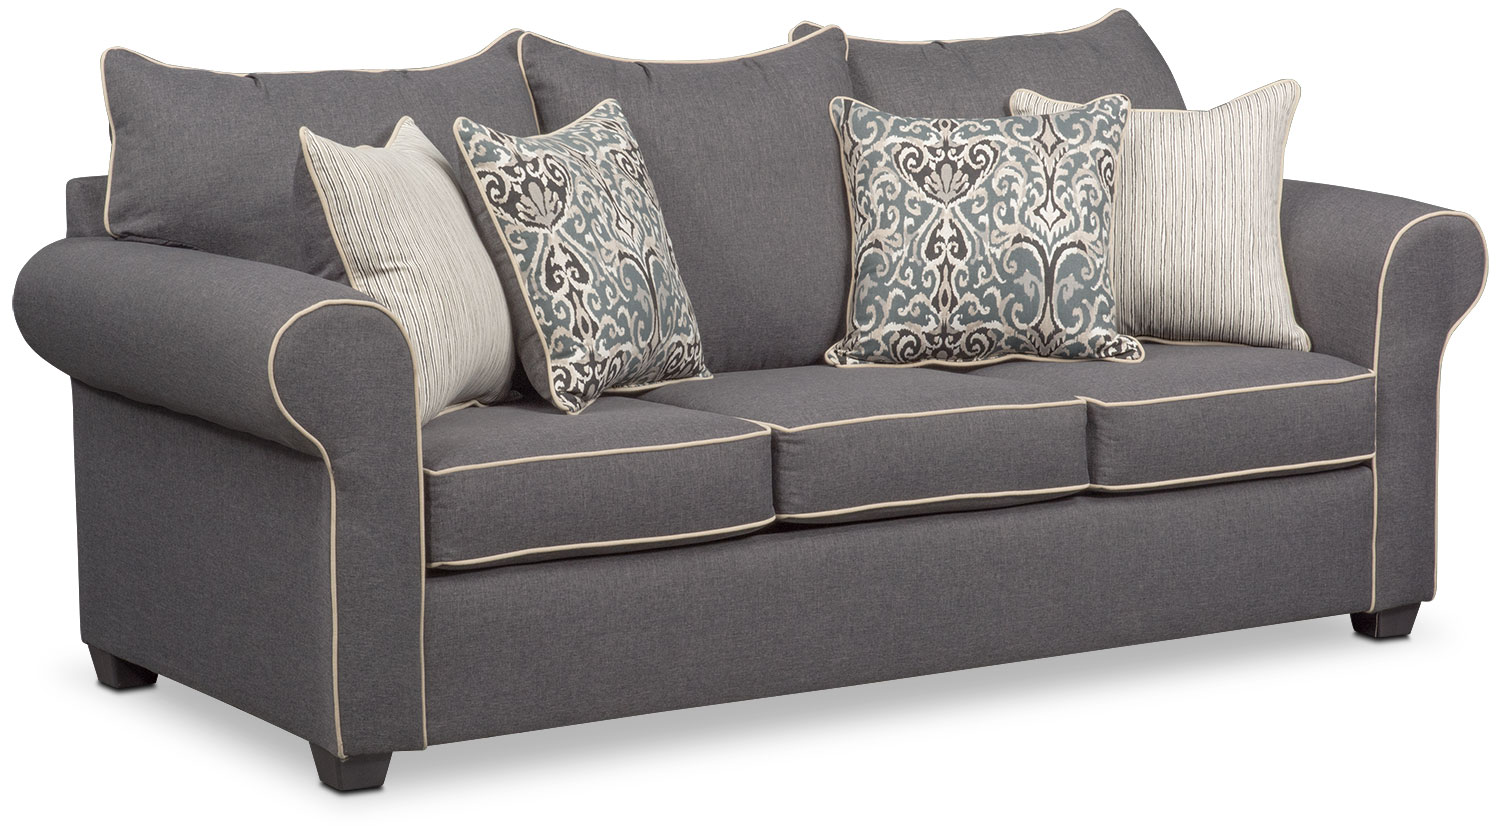 Carla Queen Innerspring Sleeper Sofa   Gray